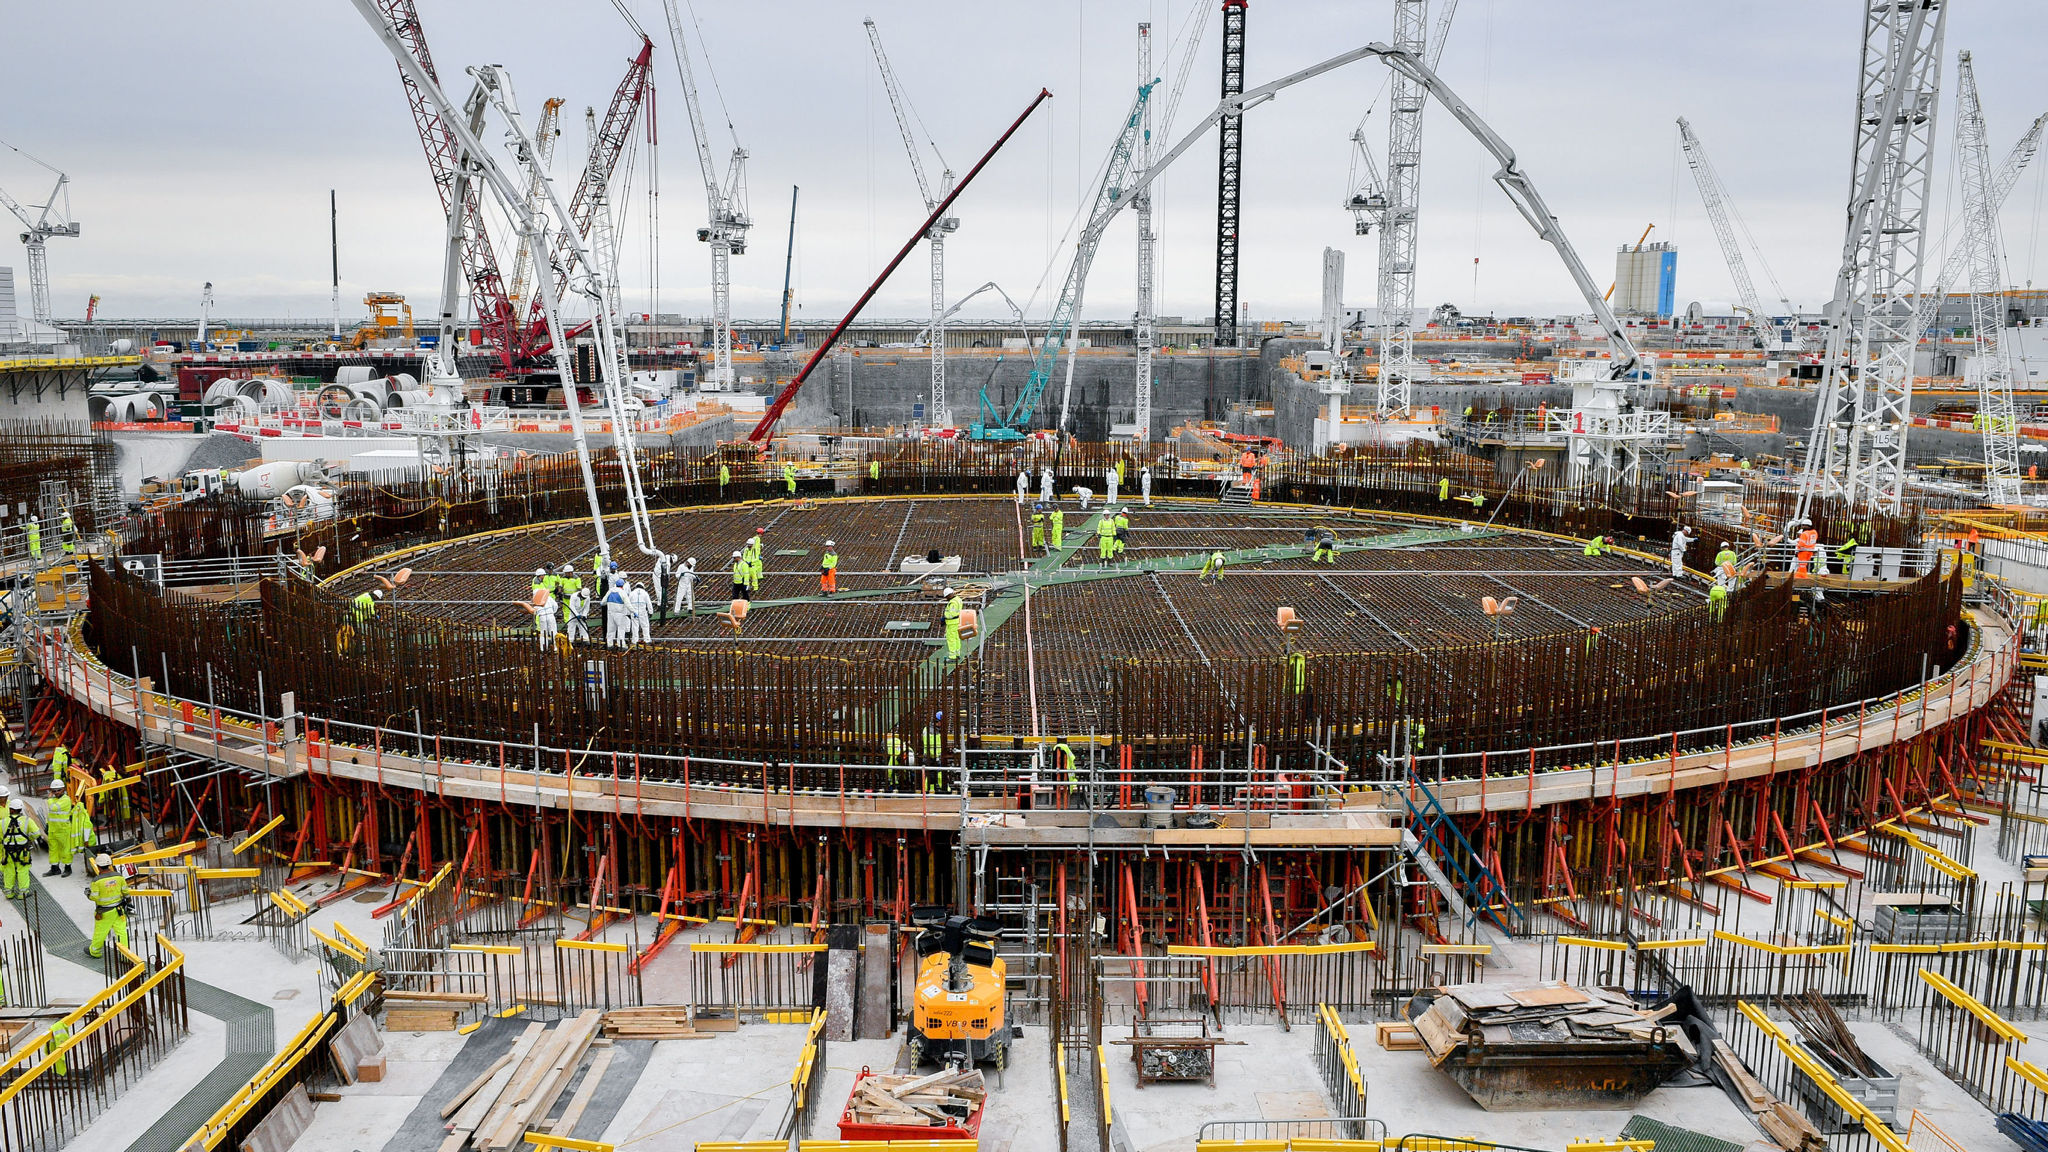 Ofgem proposes cutting Hinkley Point funding by £80m